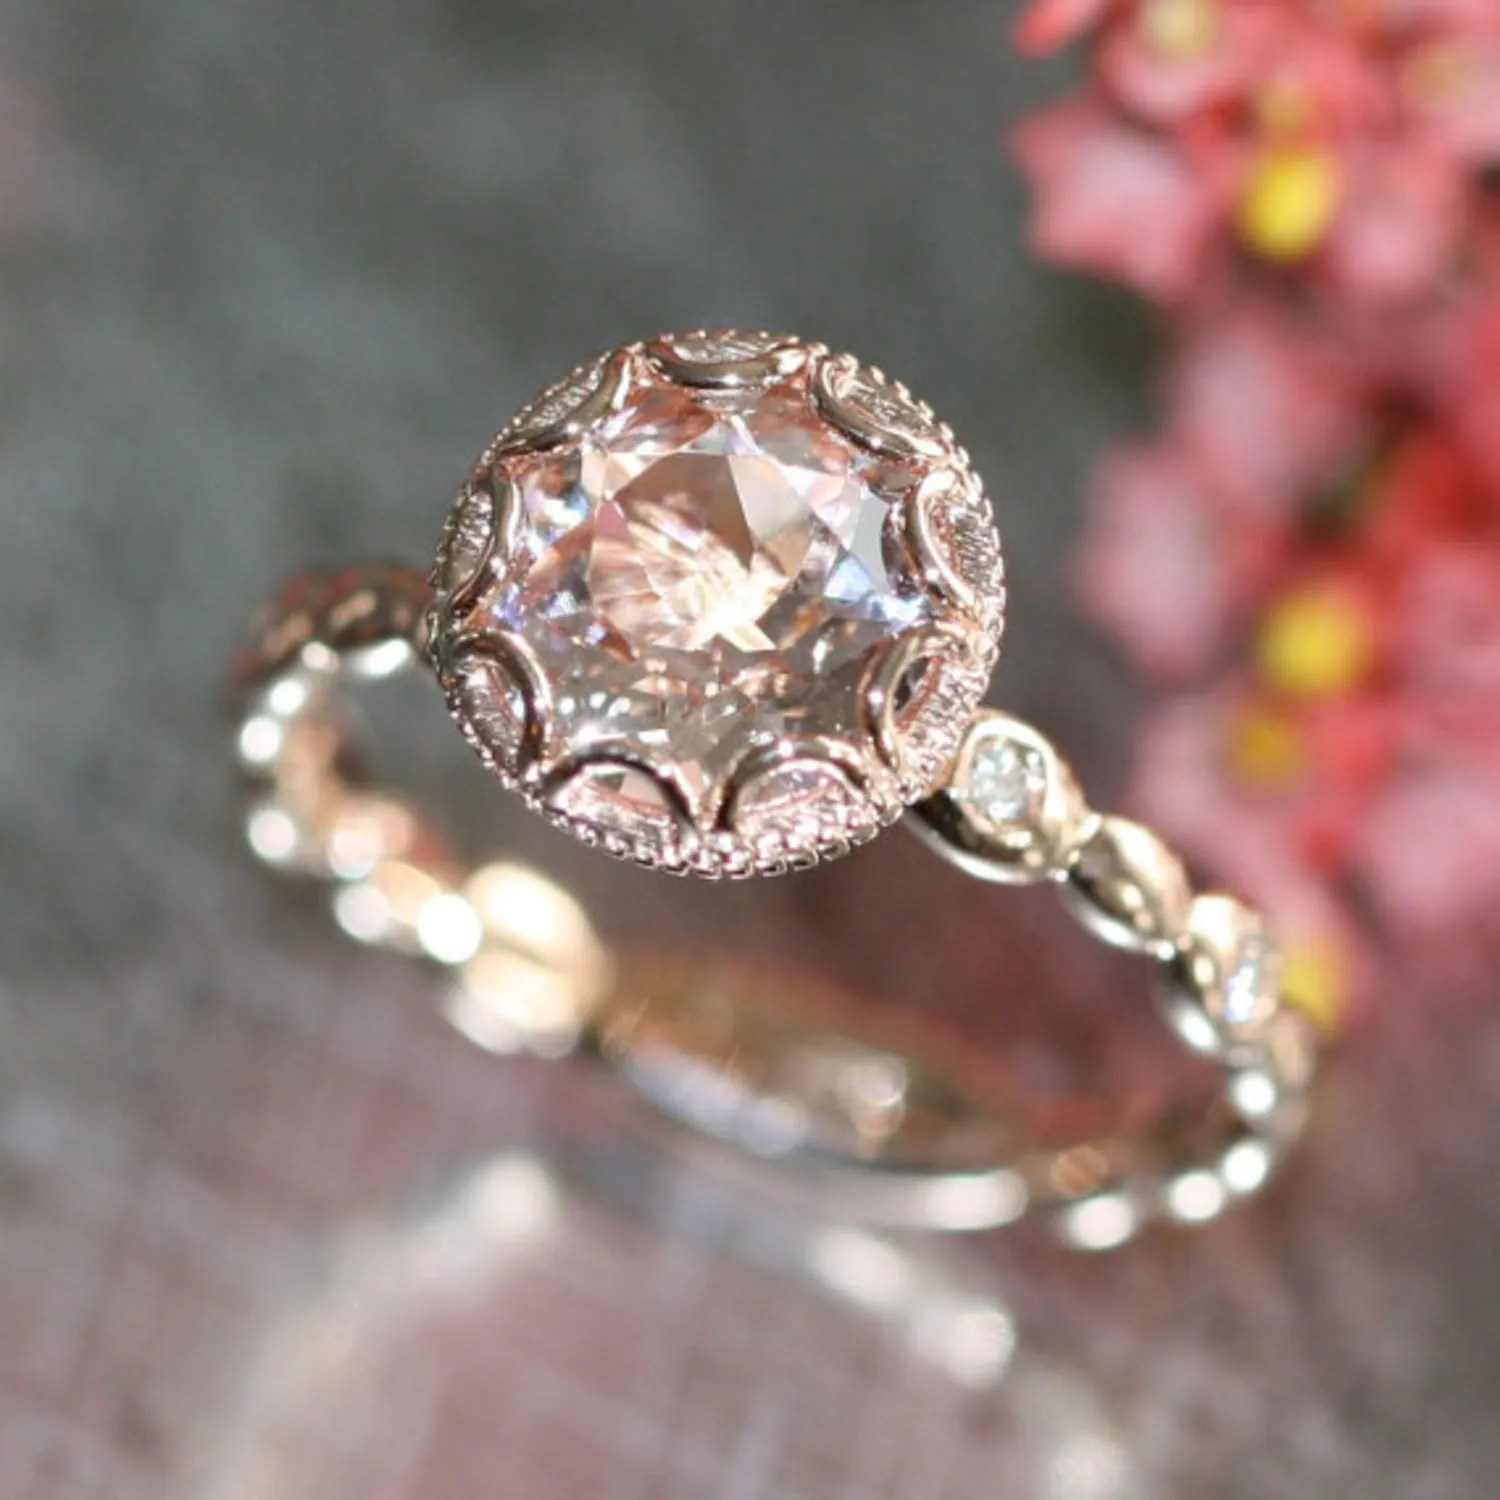 A Dozen Engagement Rings For People Who Dont Give A Damn